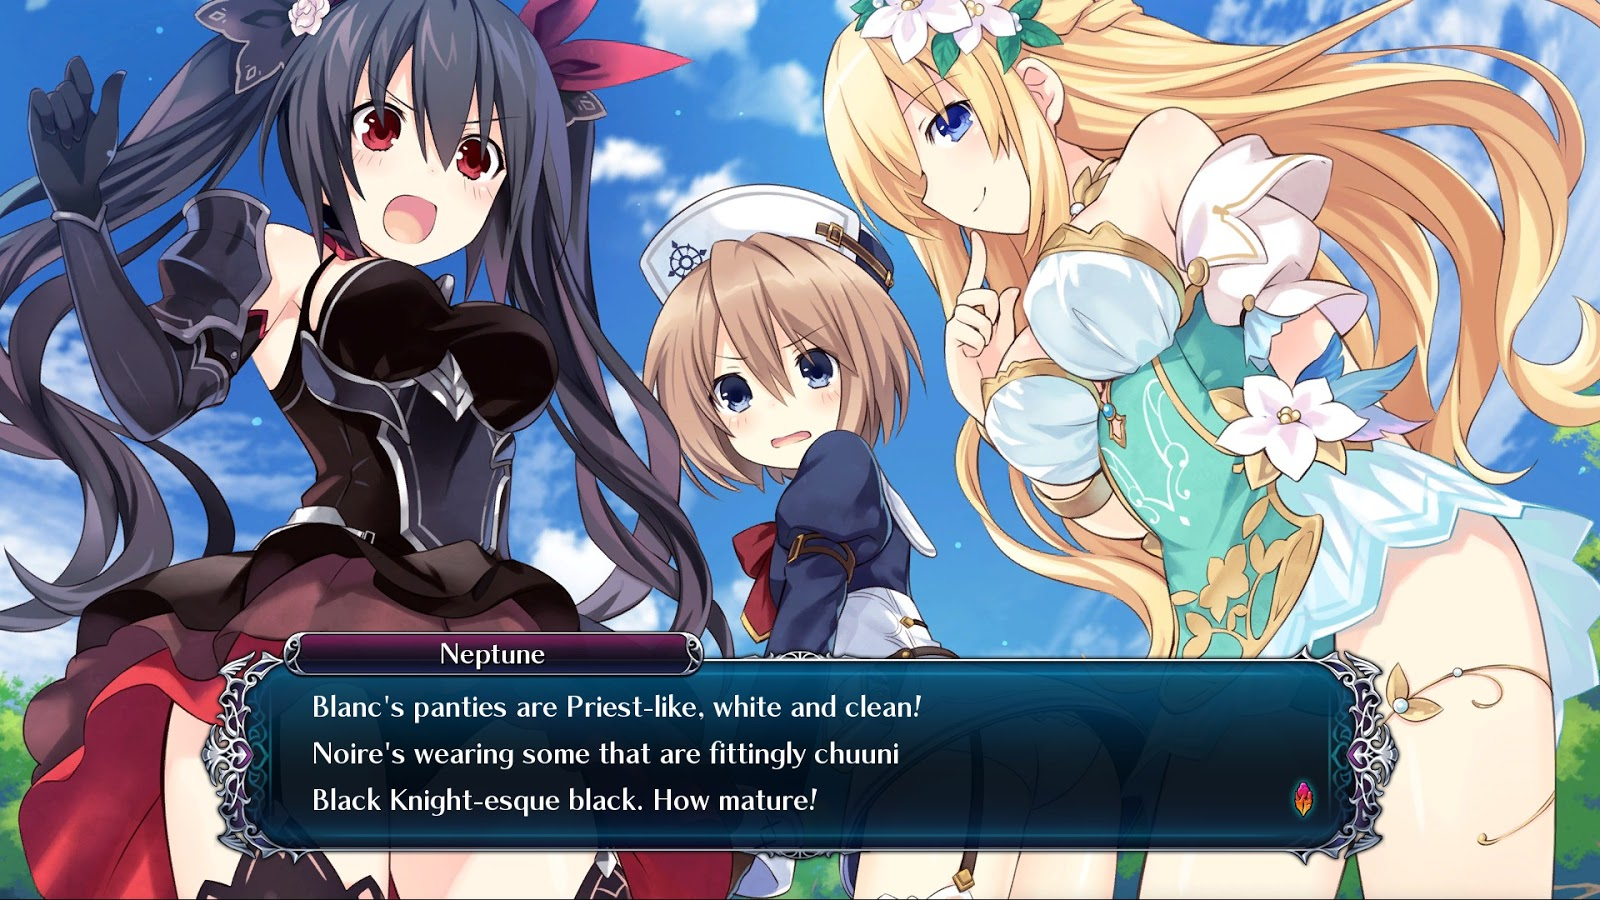 No target in MMO culture is safe from 4 Goddesses Online's merciless  lampooning, and I found myself in stitches almost every time.